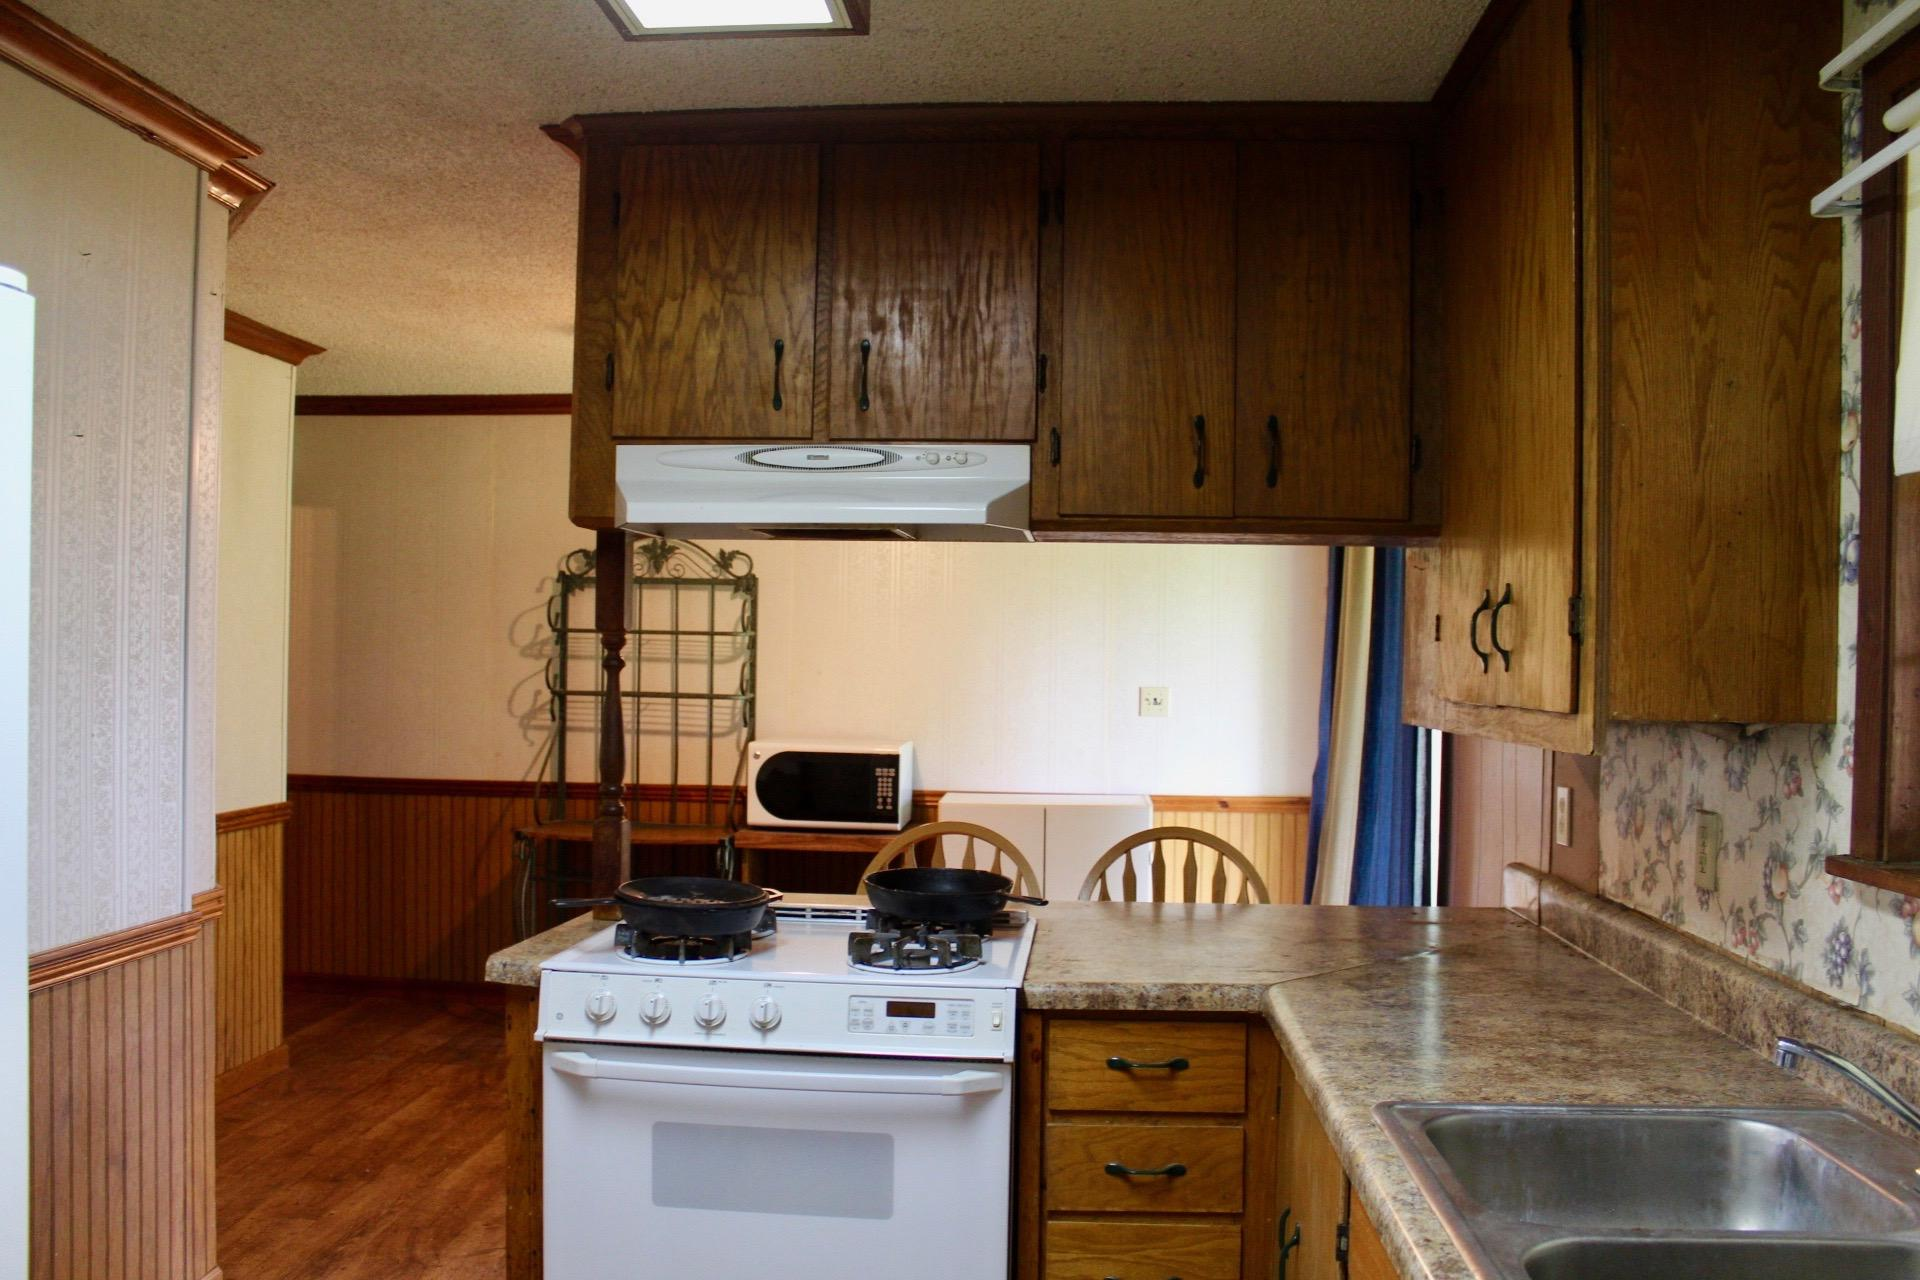 Pitkin home for sale, 226 L Johnson rd, Pitkin LA - $219,000